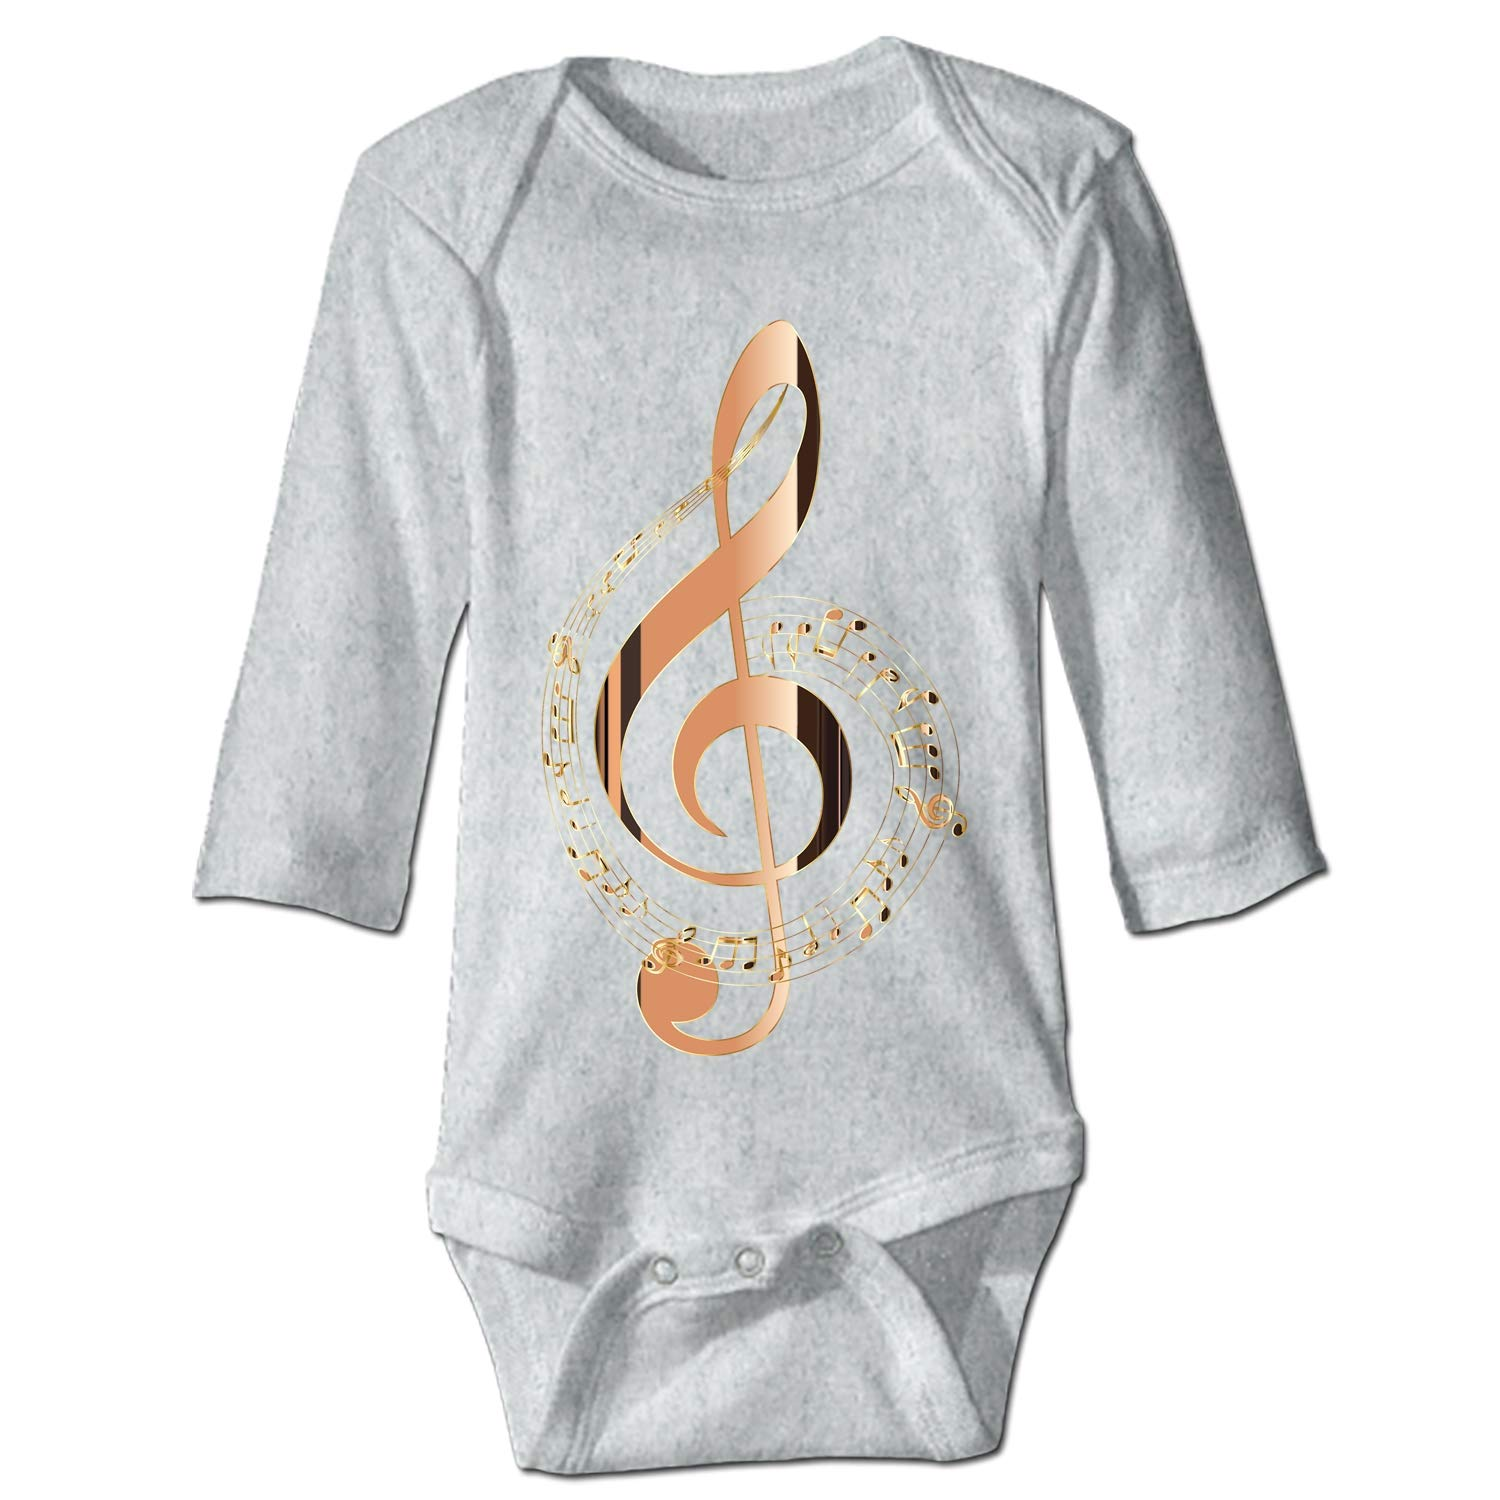 shunshunfeng Music Notes Render Infant Baby Boys Girls Clothing Shirts Long Sleeves Rompers Jumpsuit